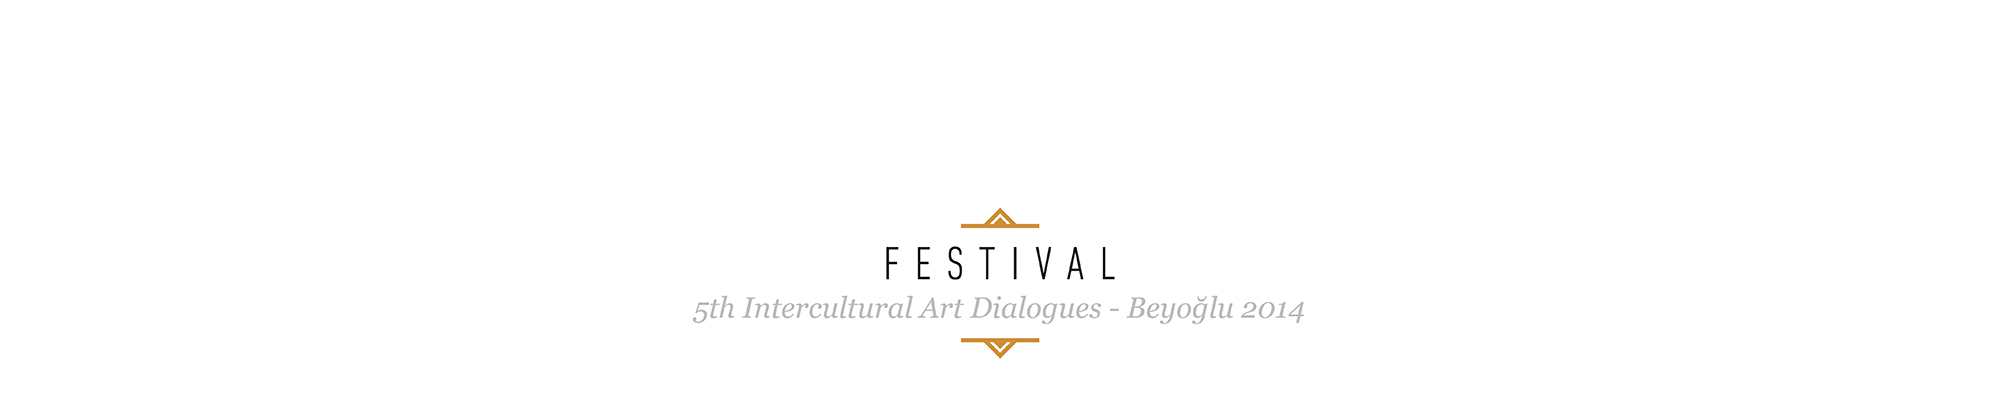 ISTANBUL_Festival-Title